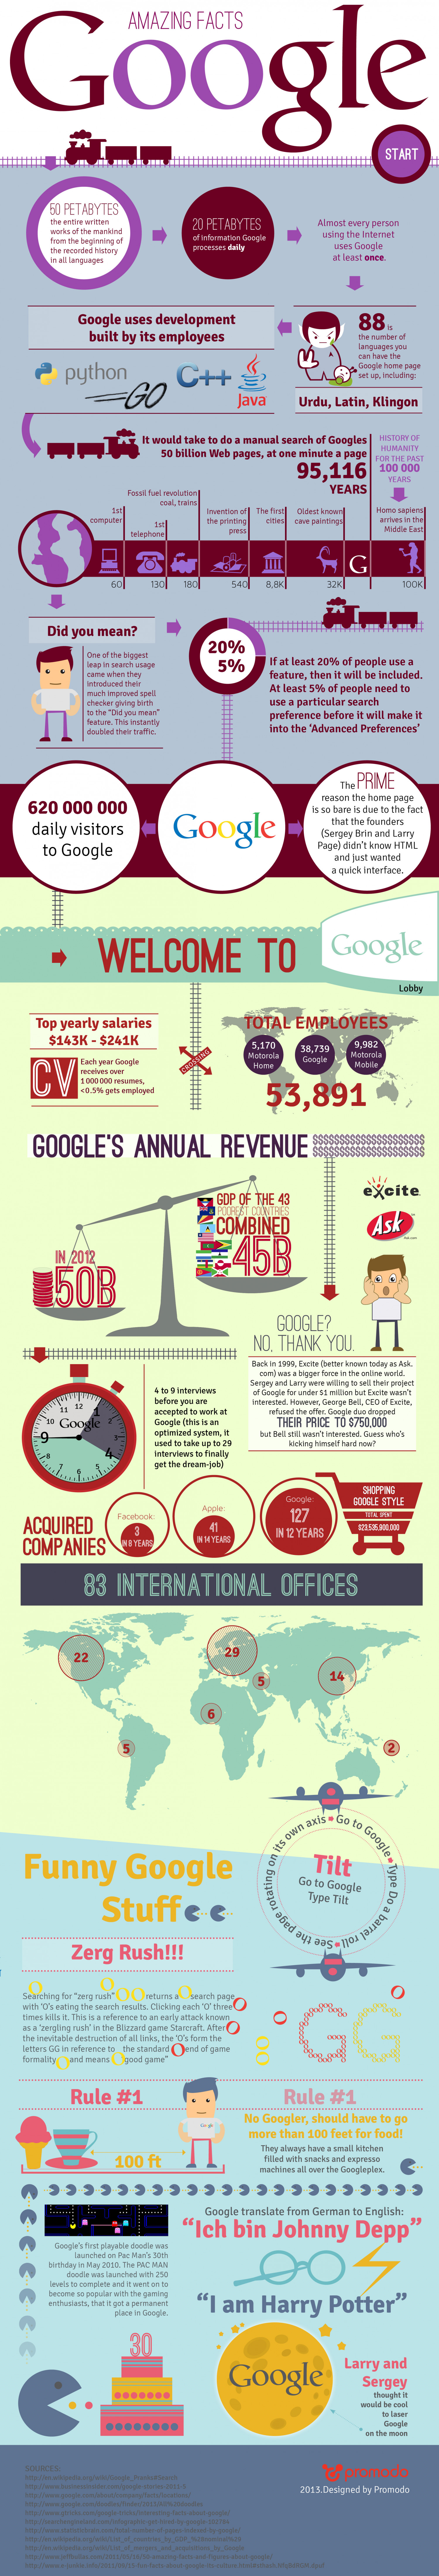 Amazing Google Facts You Most Probably Didn't Know Infographic